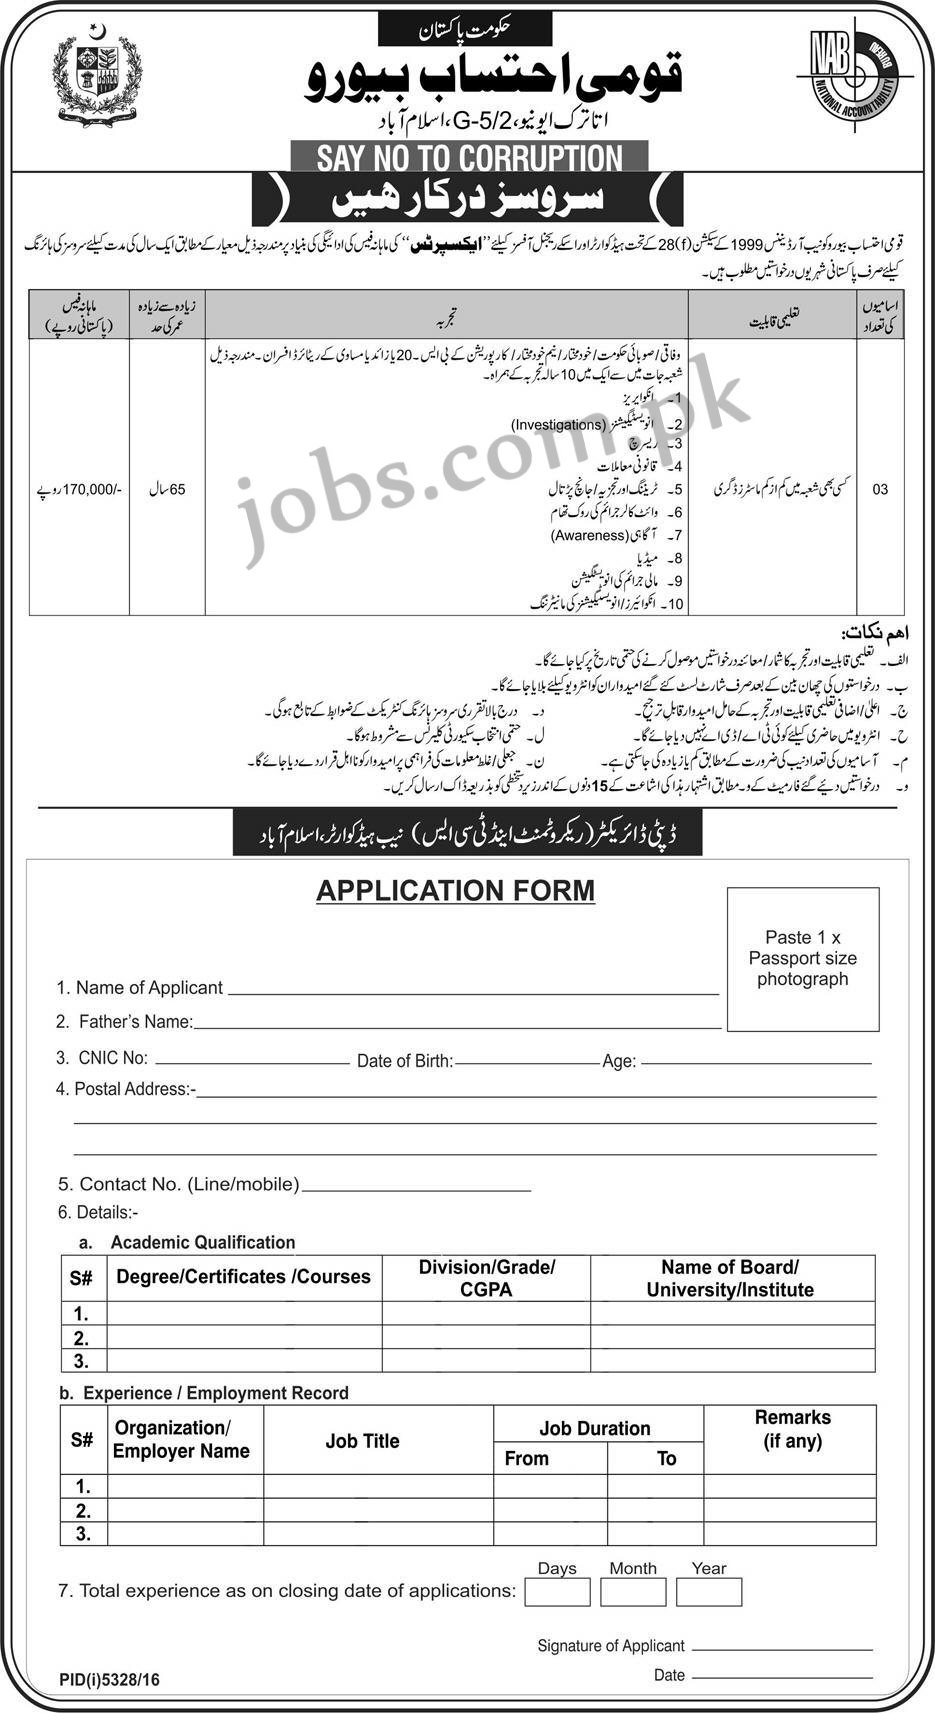 NAB-exp Online Form Submit Govt Job on hospital pakpattan, district thatta, 12th pass uttrakhand, application form, 10th pass raliway, 10th 12th qualification,